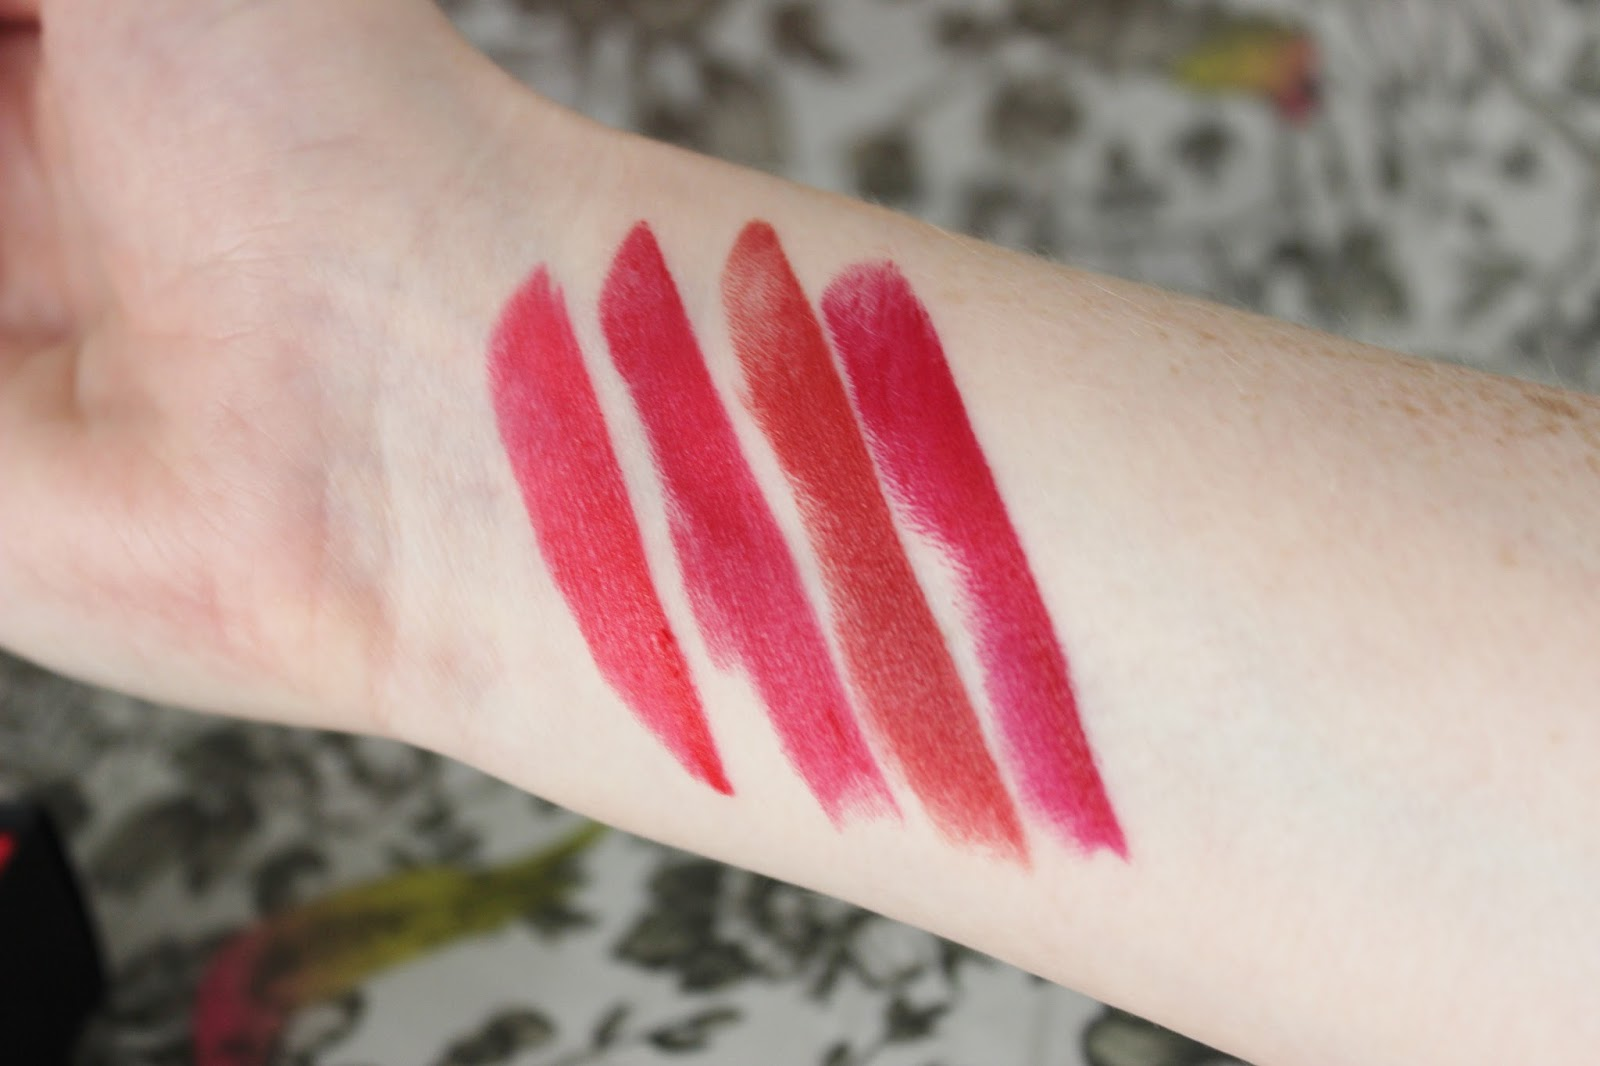 L'Oreal pure reds julianne's red, liya's red, eva's red and blake's red swatches